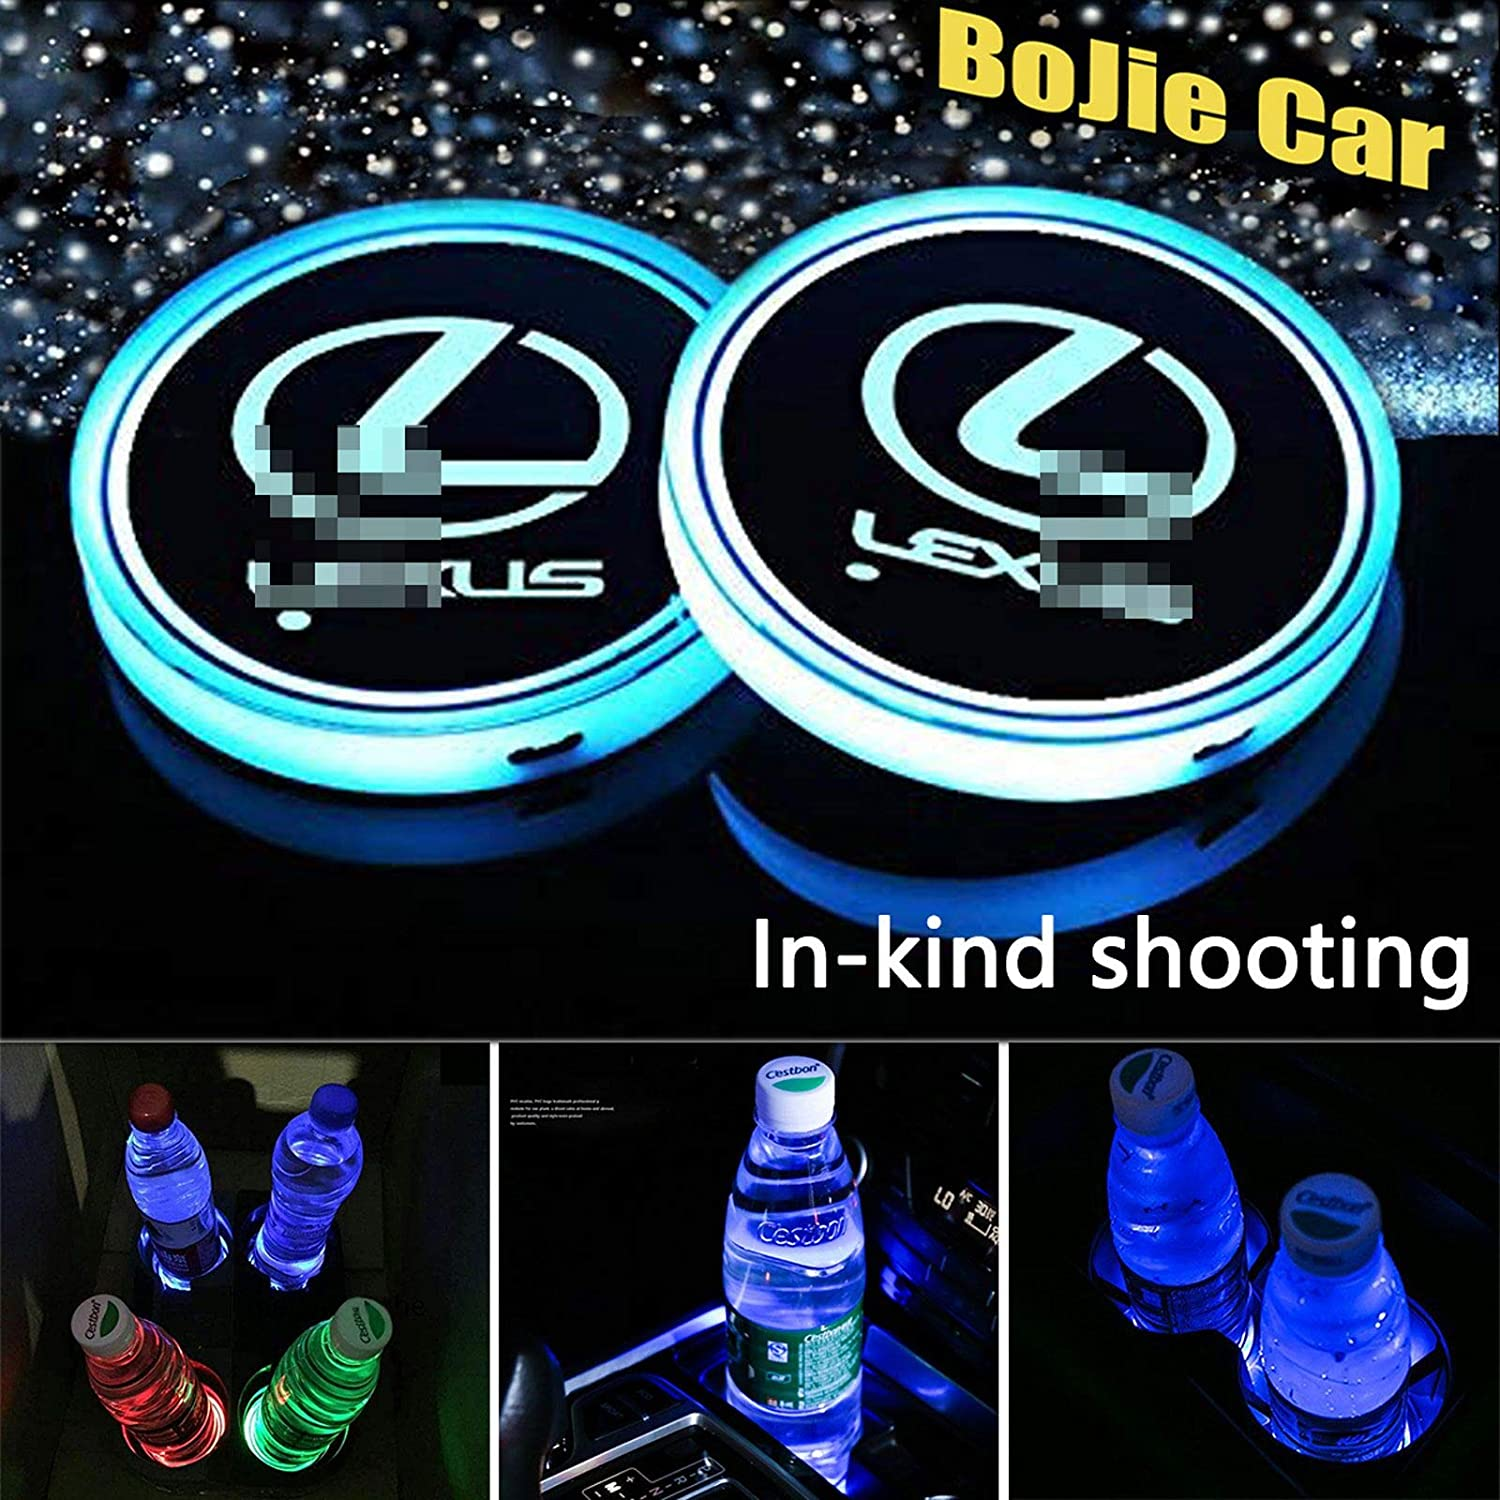 Heart Horse LED Cup Holder Lights Car Logo Coaster with 7 Colors Changing USB Charging Mat Luminescent Cup Pad Interior Atmosphere Lamp Decoration Light for BMW Accessories 2 PCS, Waterproof